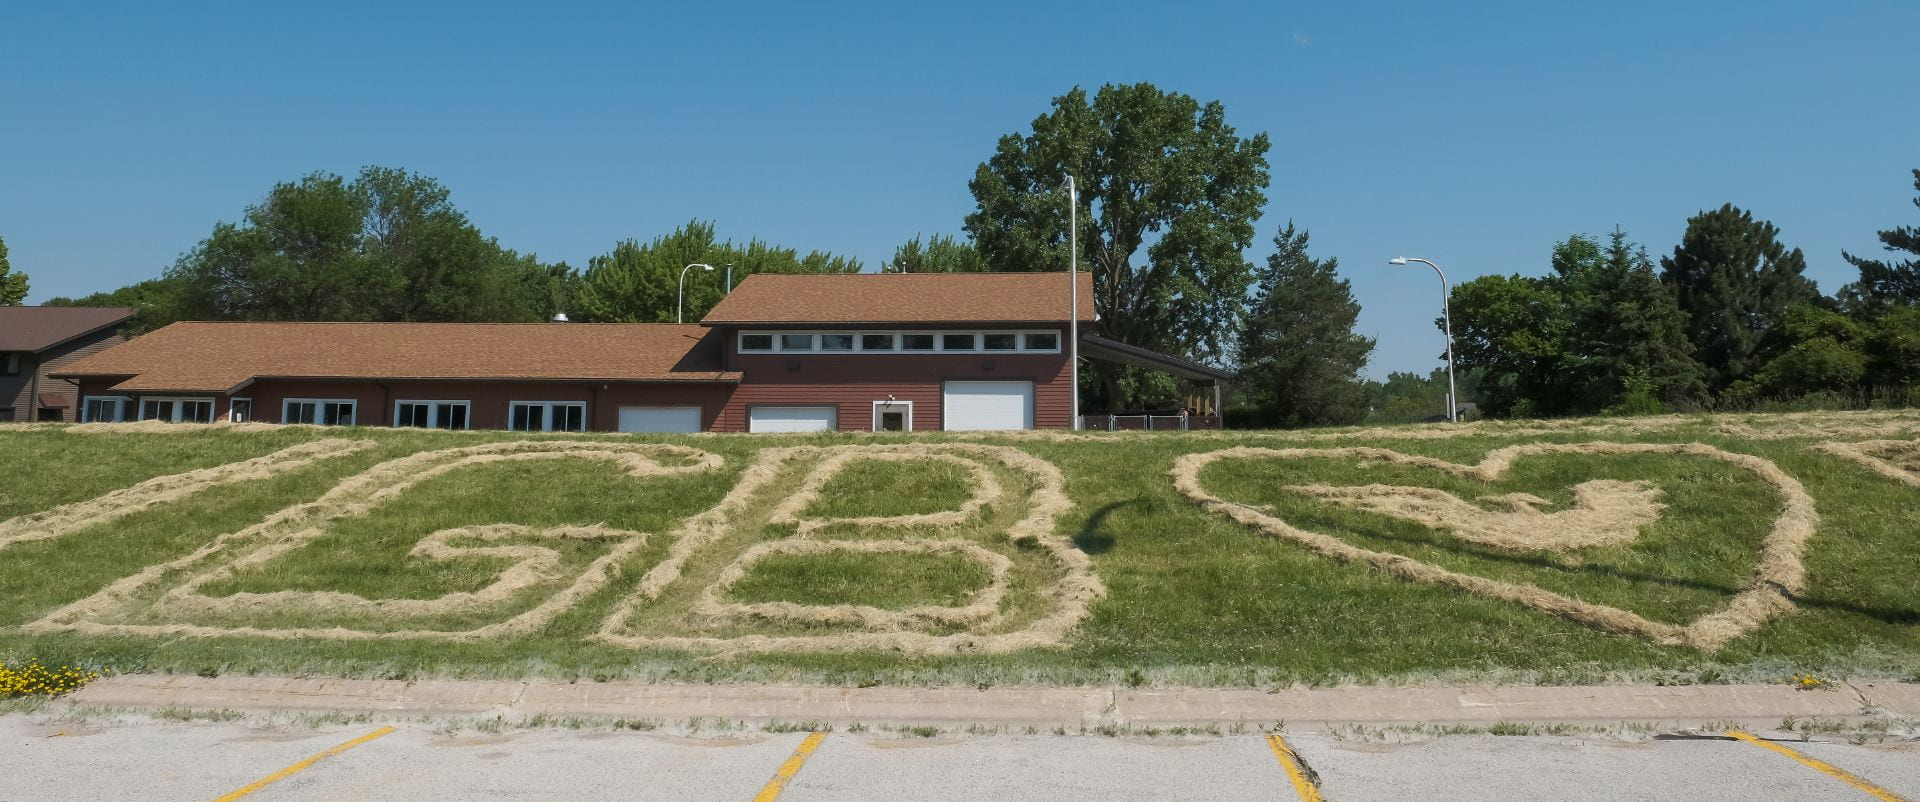 Photo of the letters GB and a large heart with a phoenix carved in the lawn at the UW-Green Bay campus.